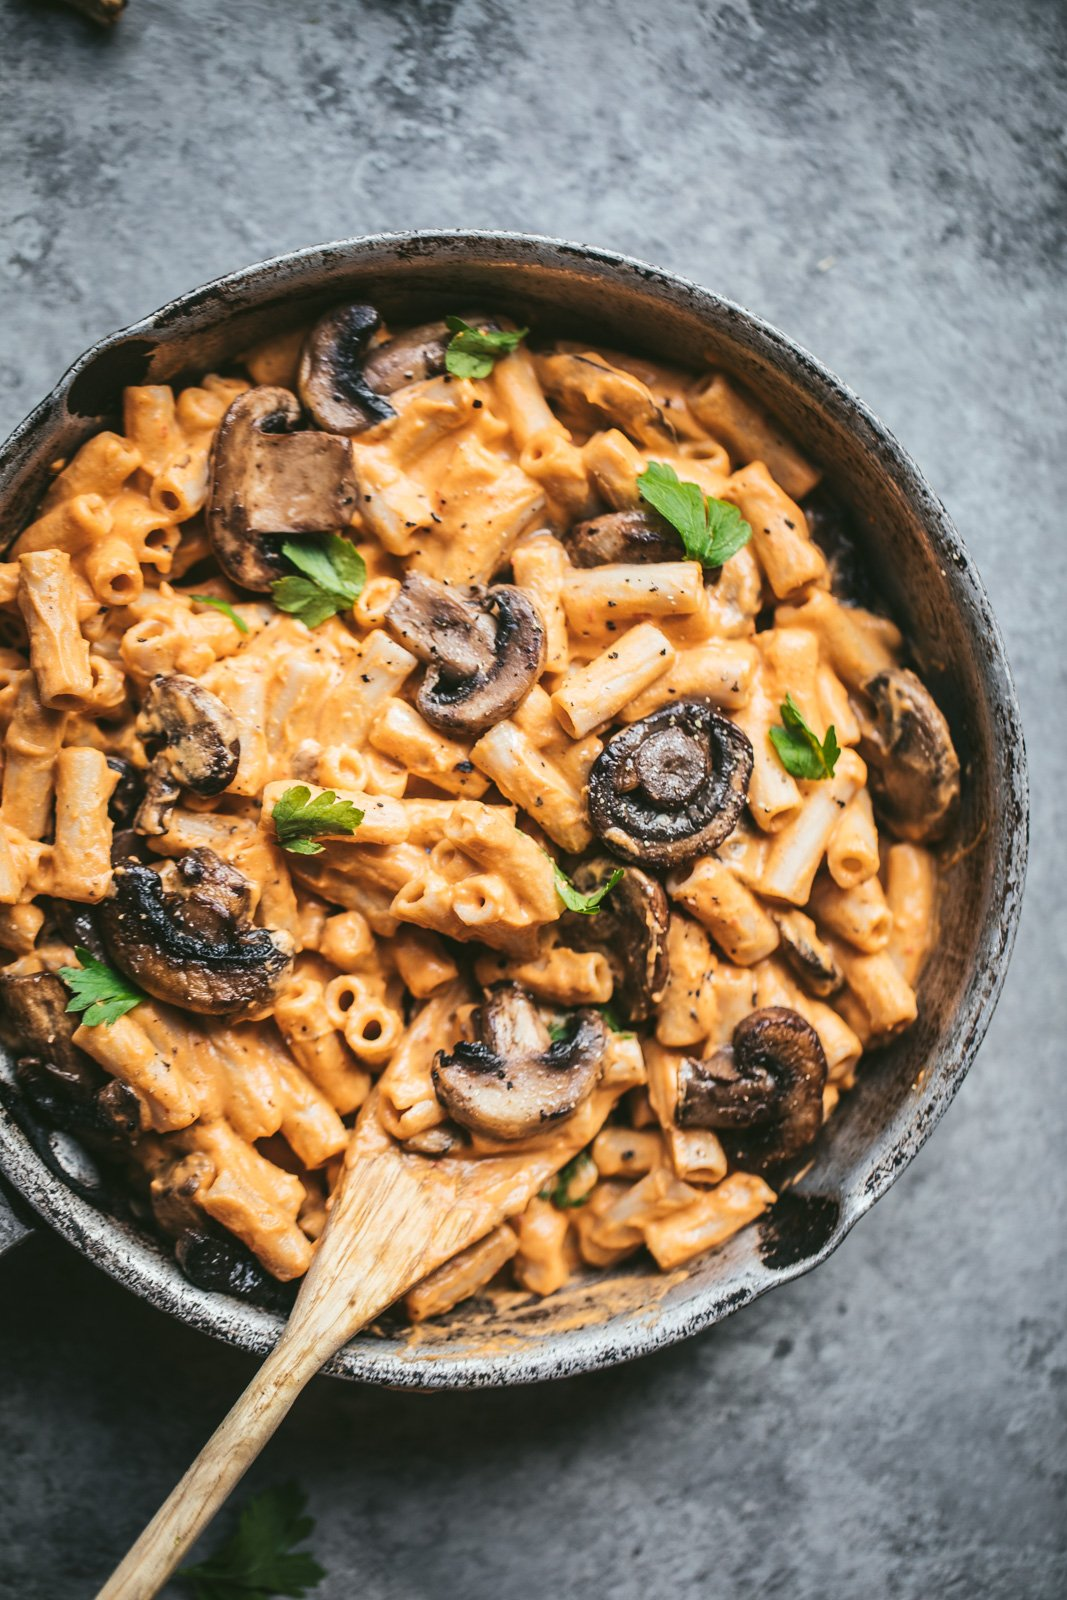 sweet potato penne pasta with vegan sweet potato cream sauce in a skillet with mushrooms and a wooden spoon